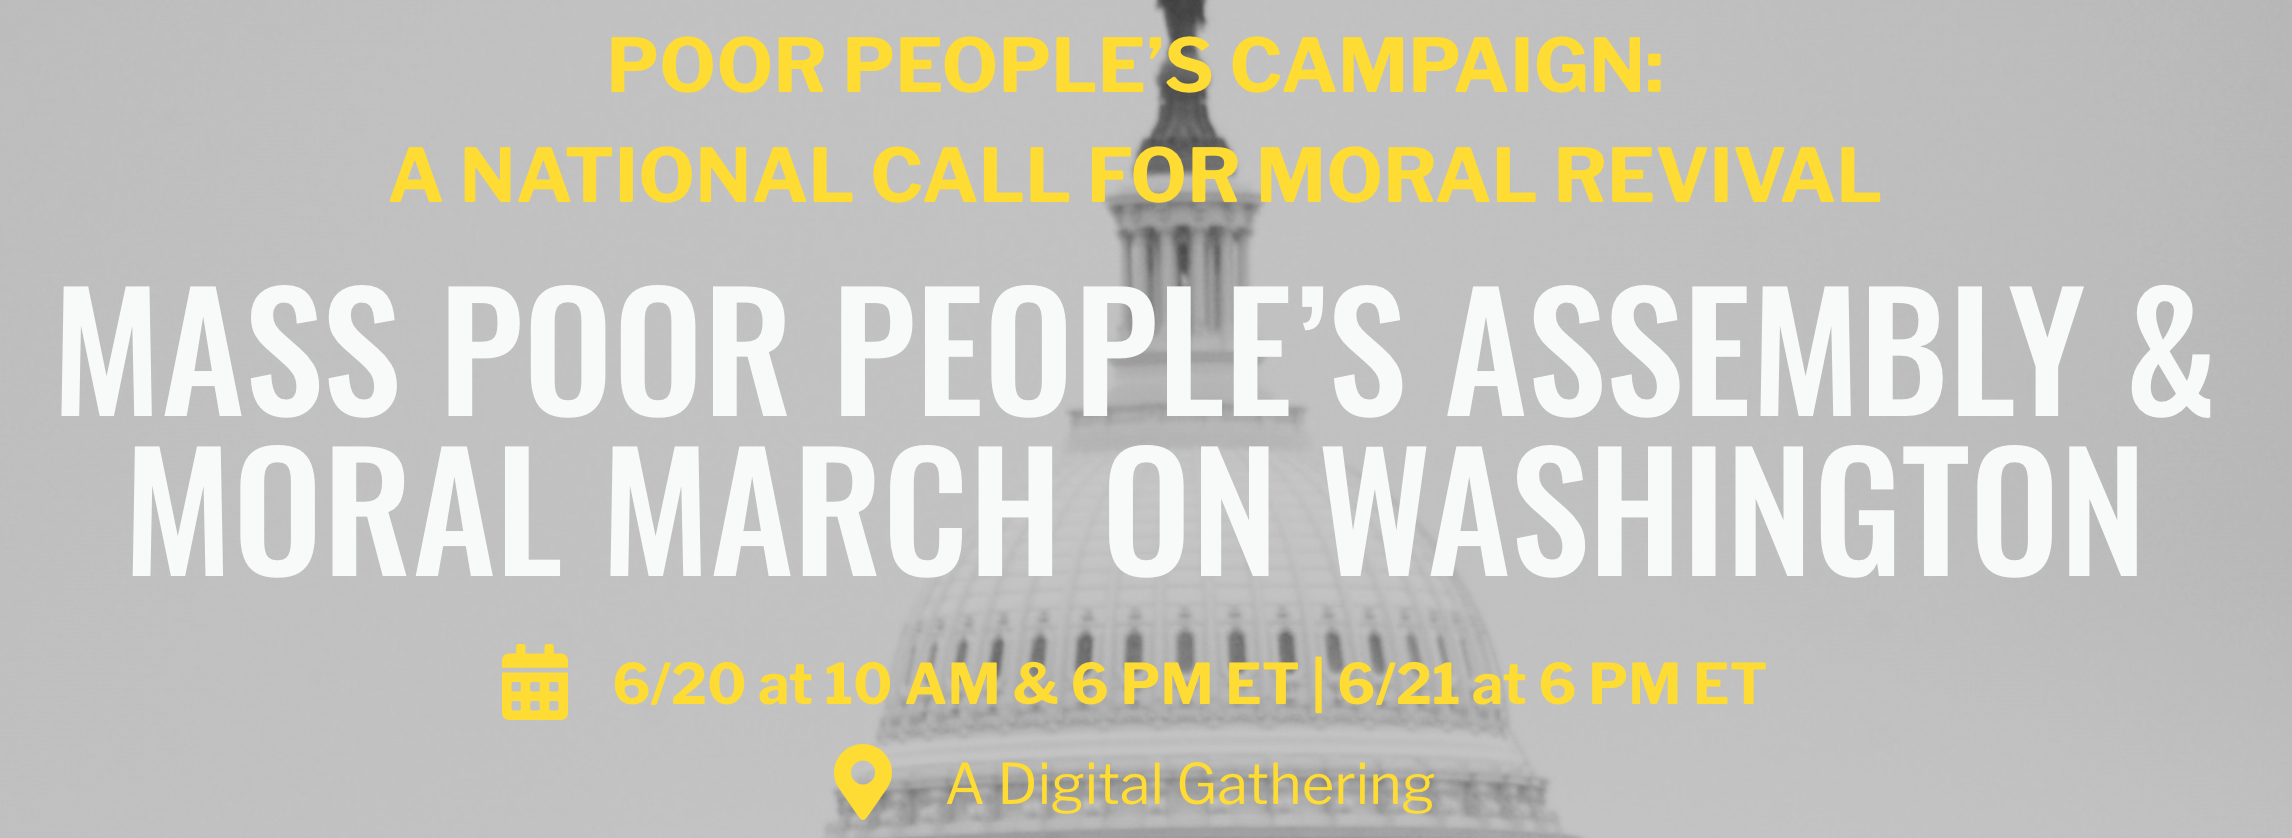 Mass Poor People's Assembly & Moral March on Washington